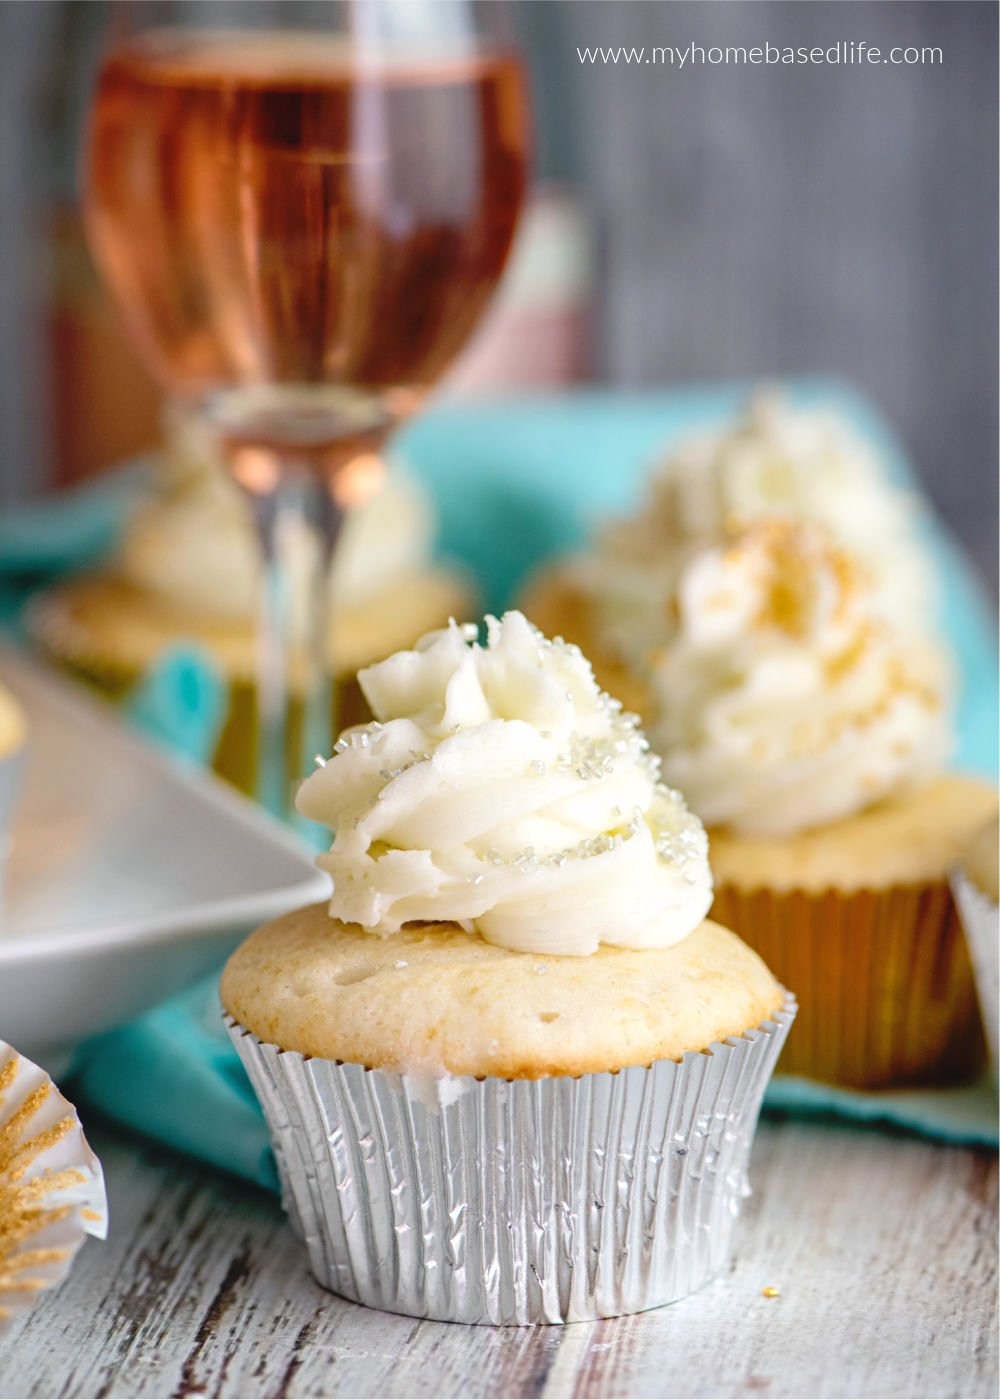 Cupcakes mit Champagner